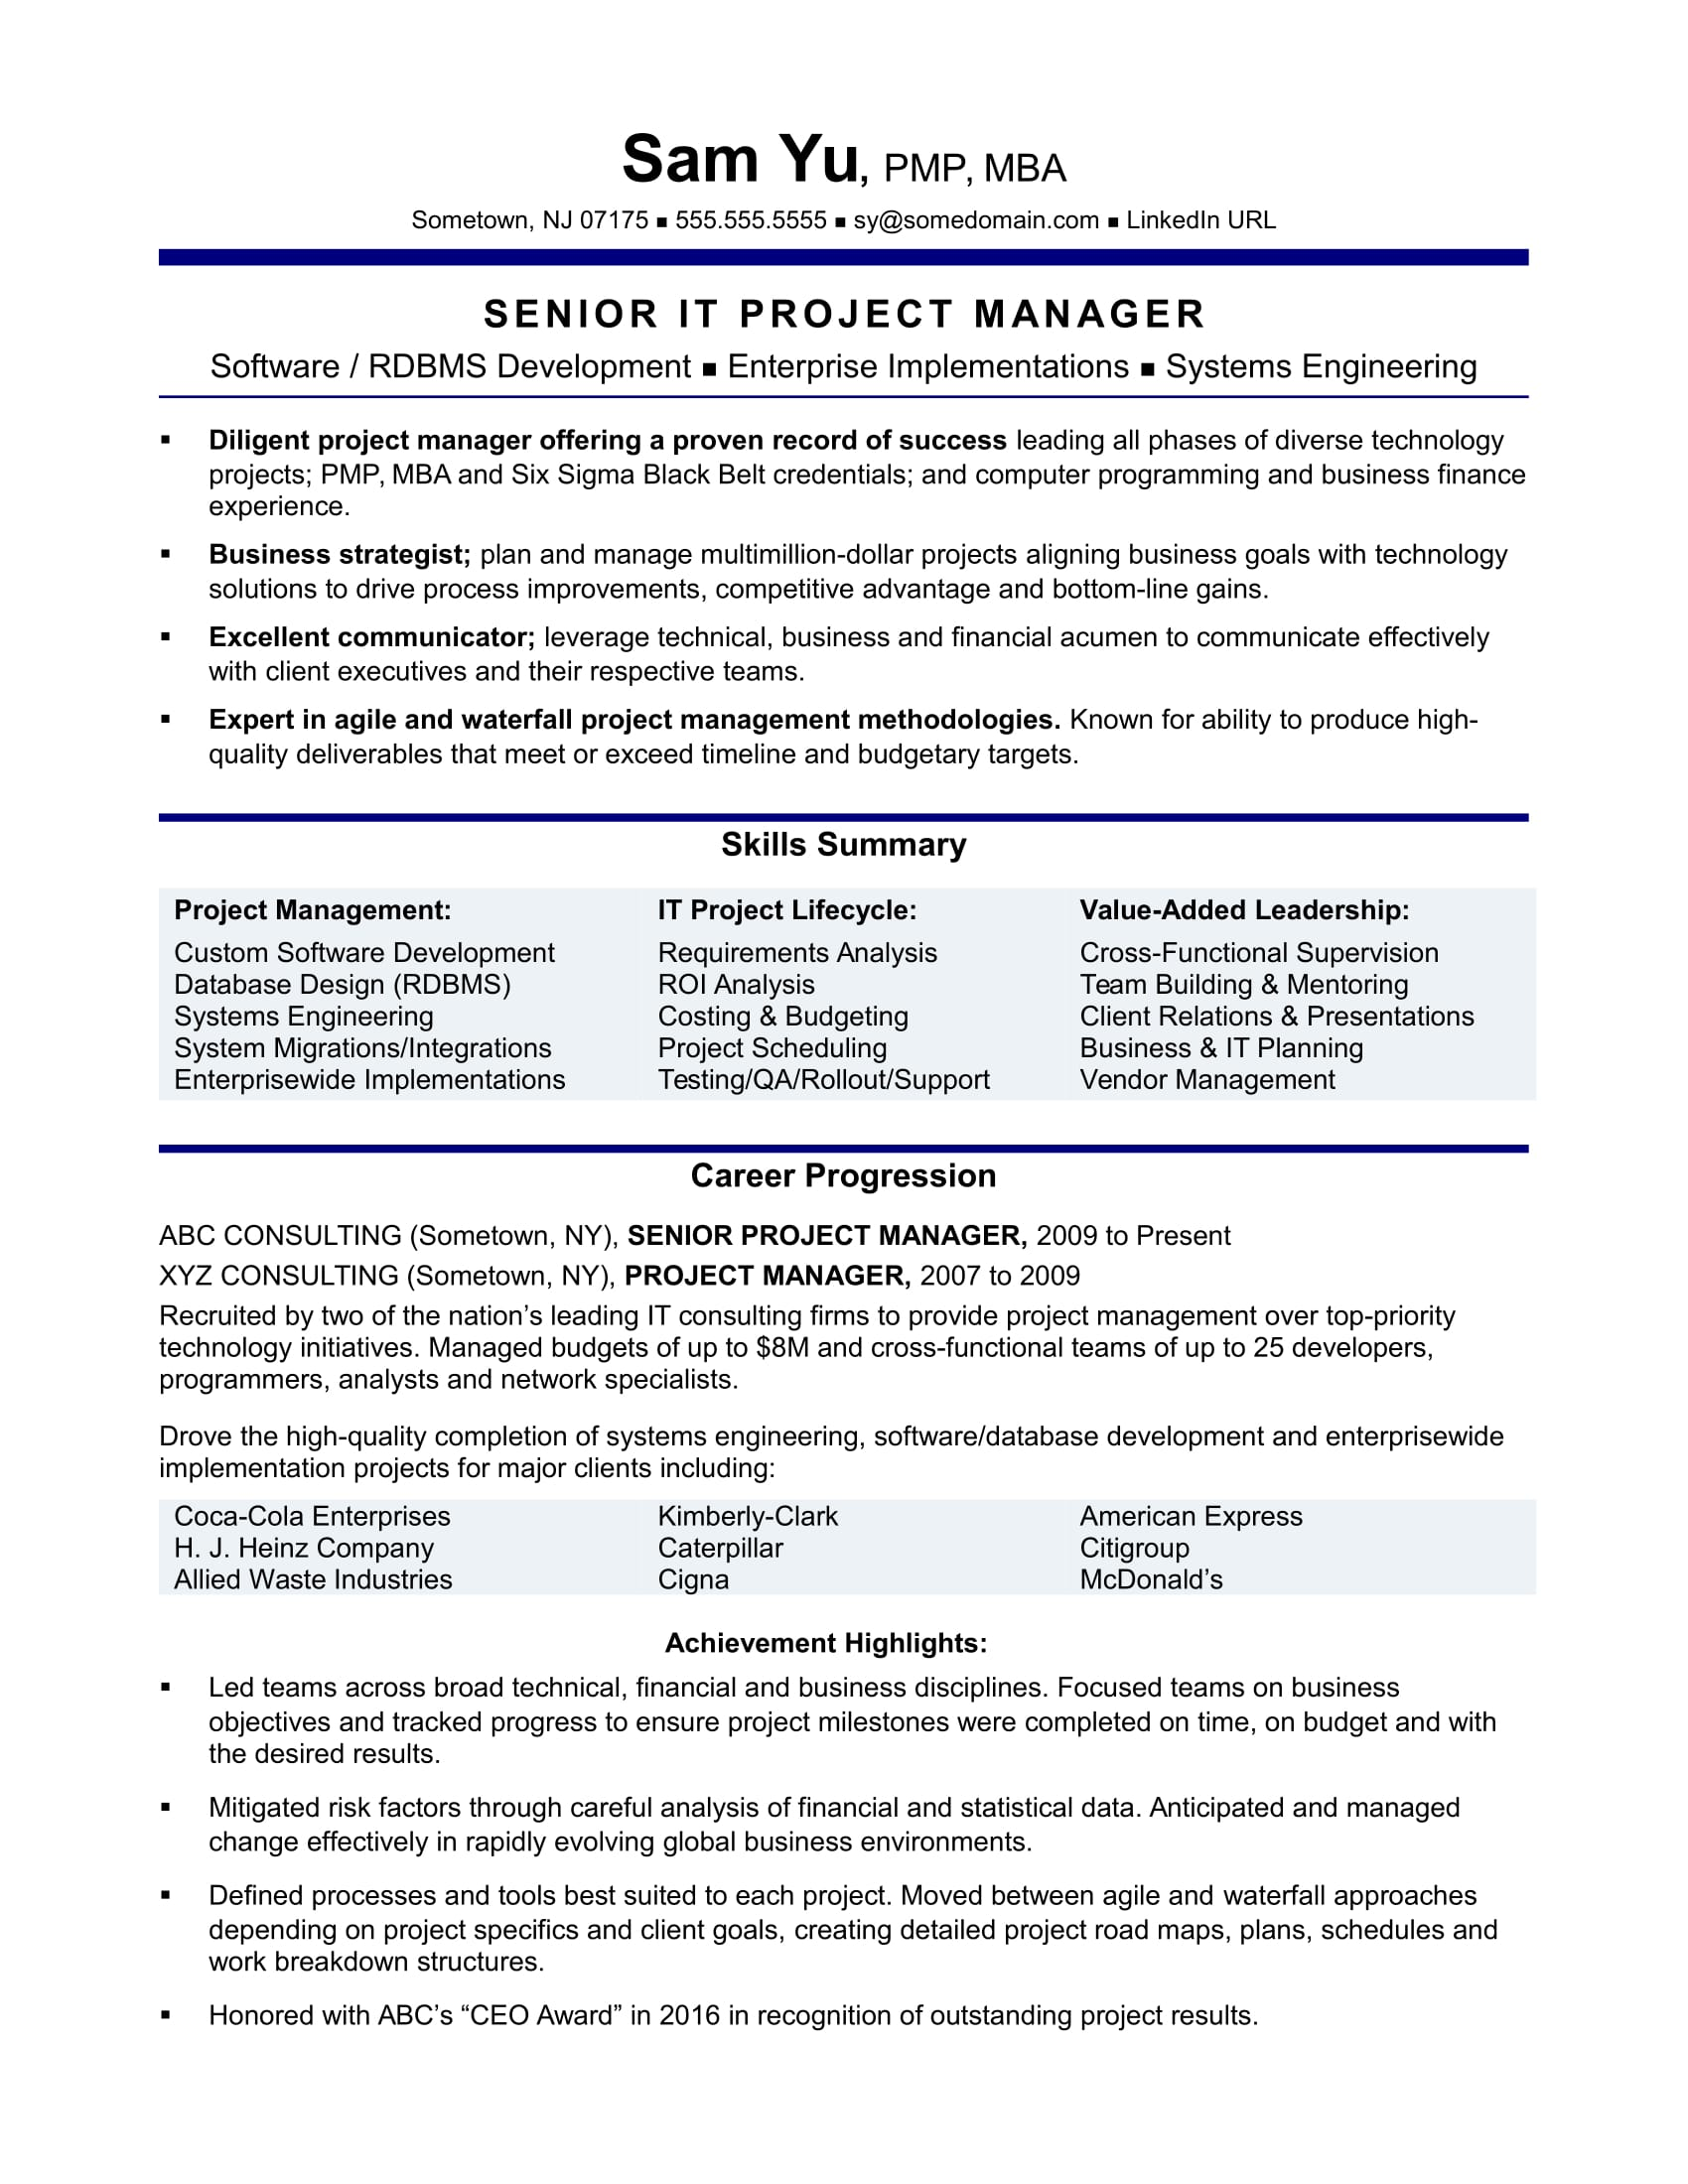 How to write a resume manager